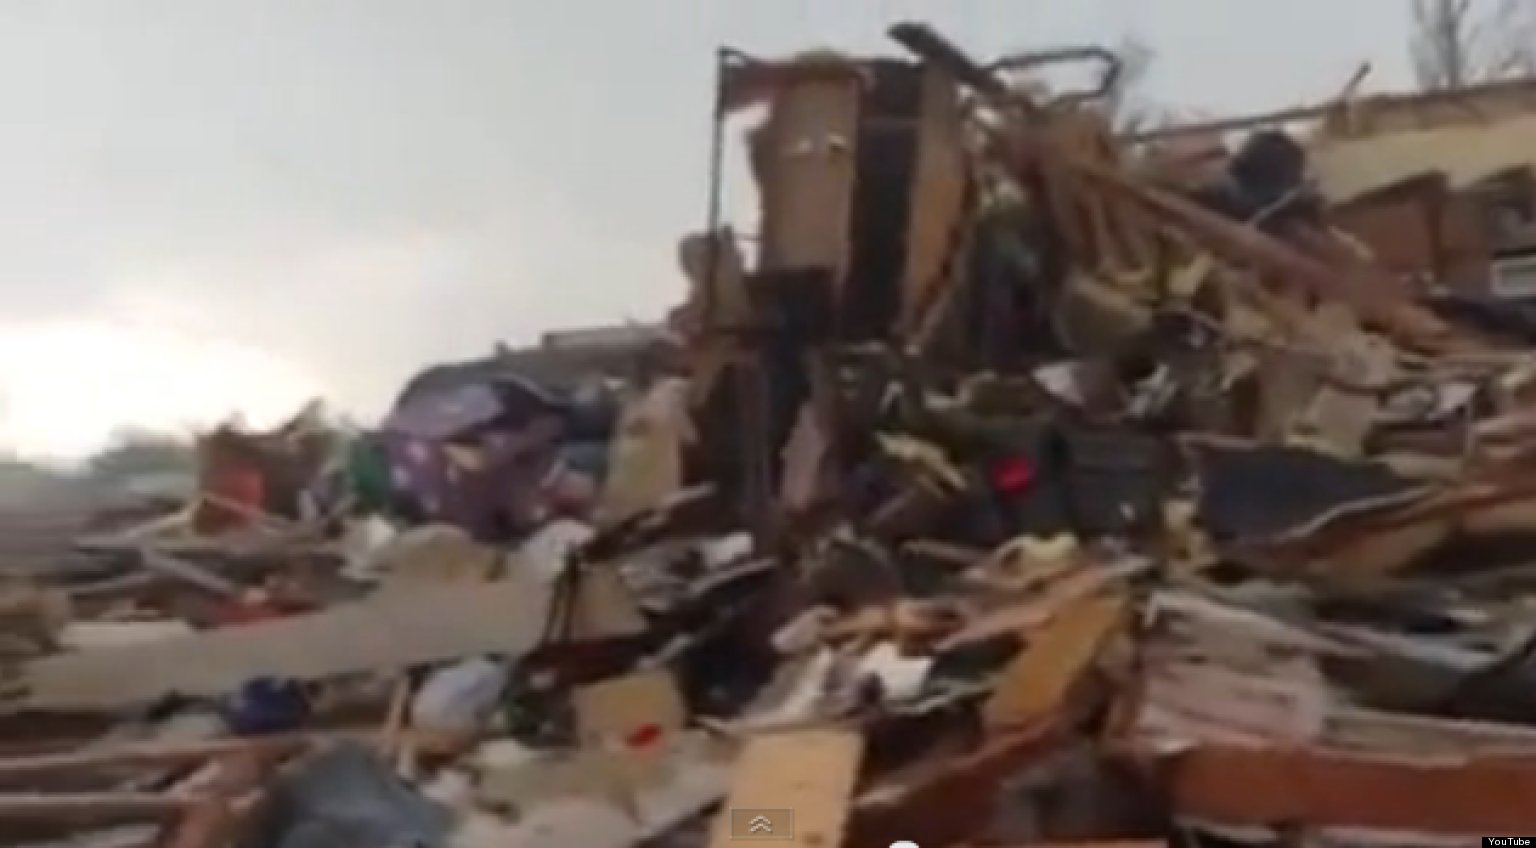 WATCH: Family Emerges From Storm Cellar To Find Neighborhood In Ruins